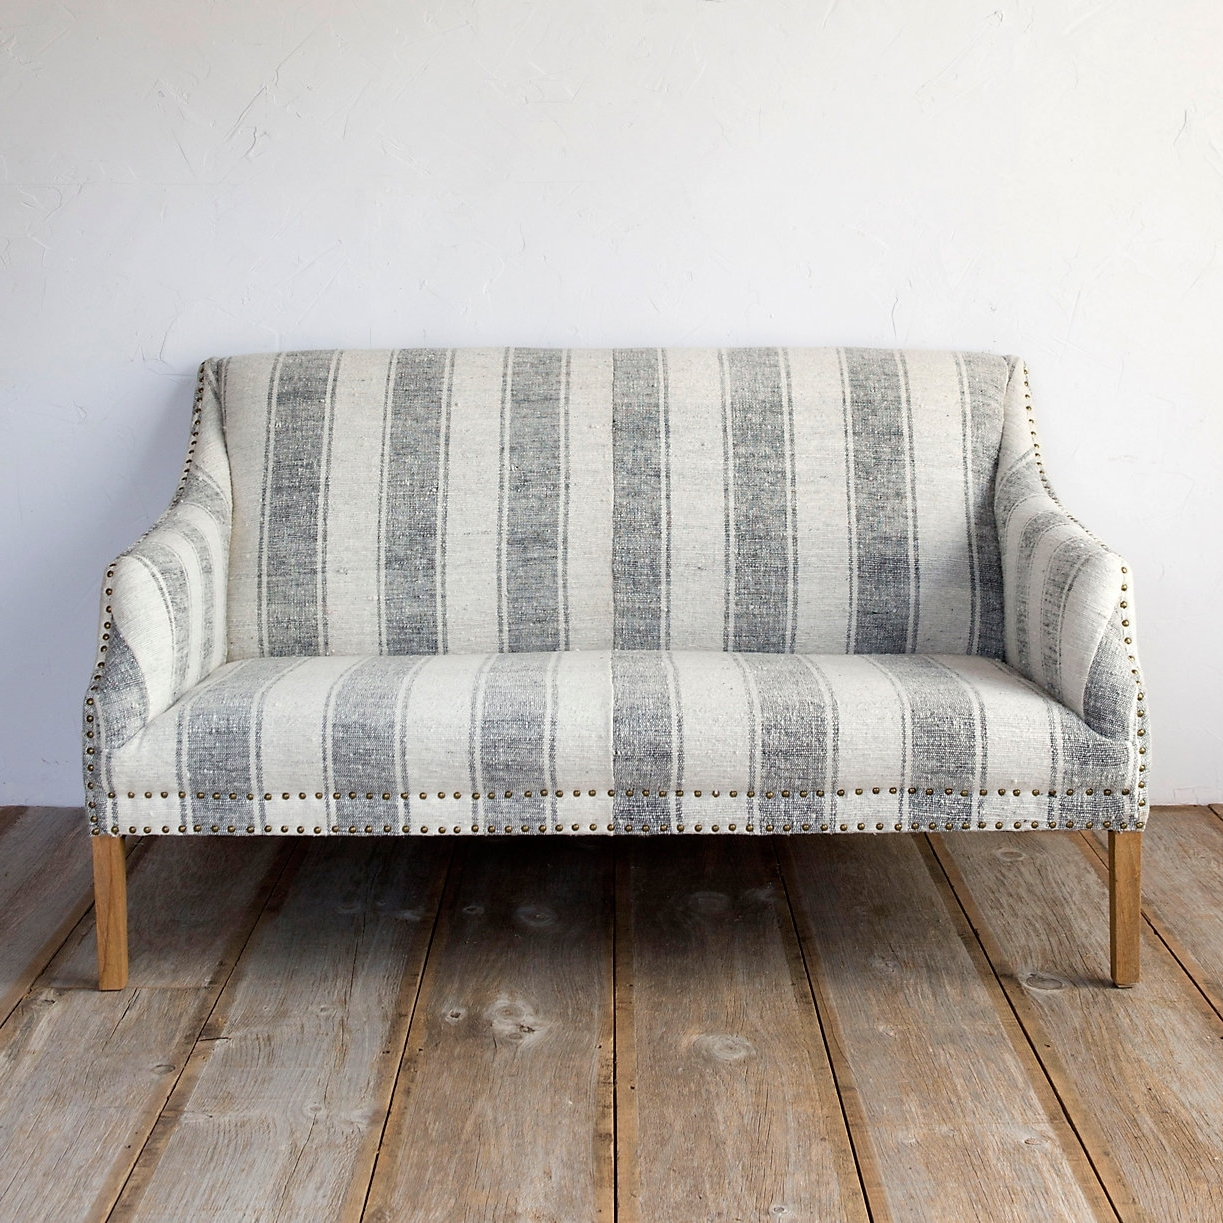 Widely Used Shabby Chic Decor For Sale Shabby Chic Used Furniture Shabby Chic With Shabby Chic Sofas (View 20 of 20)